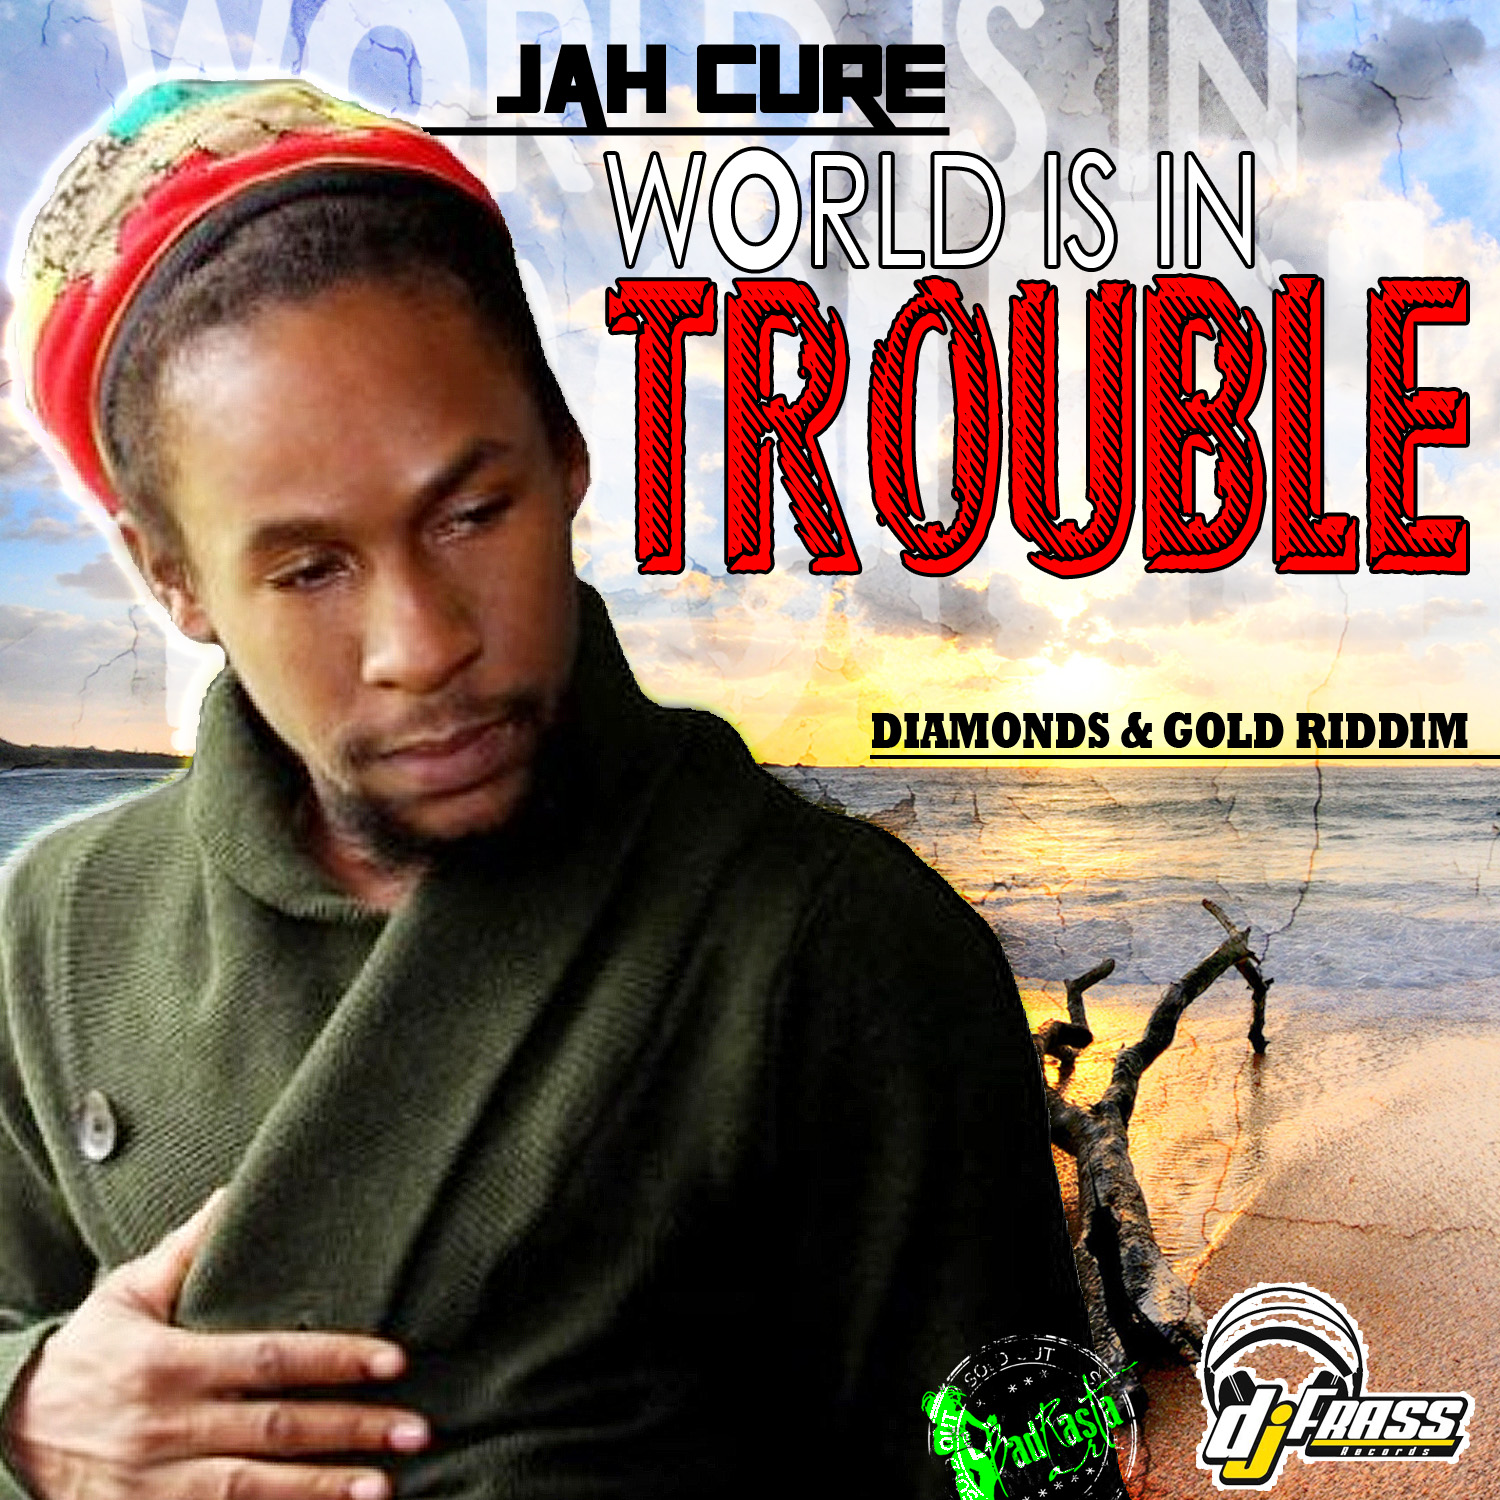 JAH CURE – WORLD IS IN TROUBLE – DIAMONDS & GOLD RIDDIM – DJ FRASS RECORDS